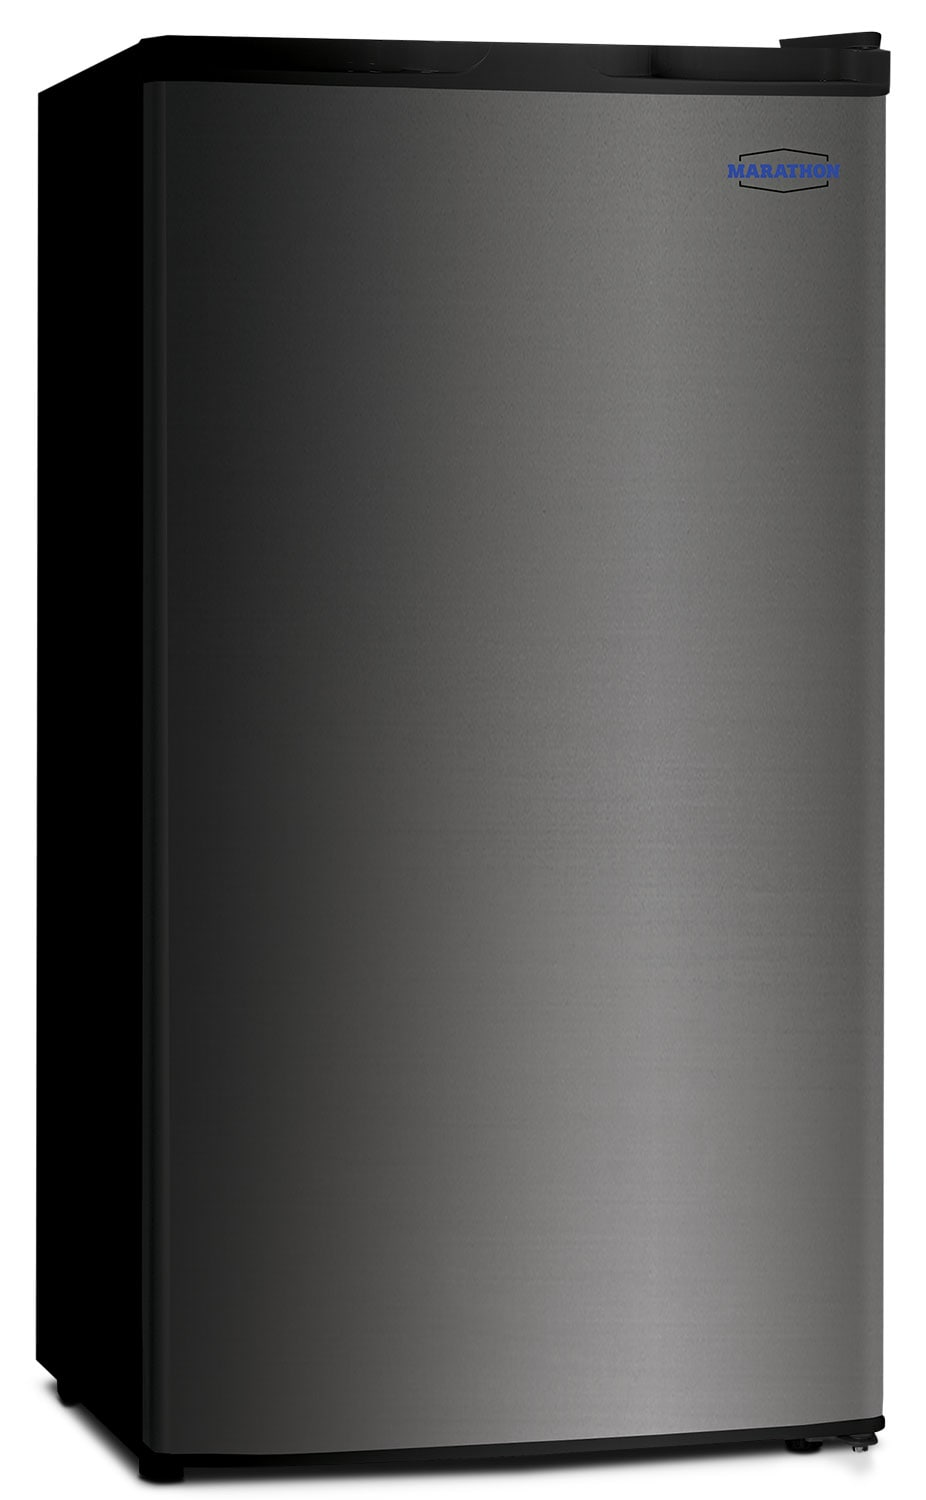 Refrigerators and Freezers - Stirling Marathon Black Steel Compact Refrigerator (3.2 Cu. Ft.) - 01C30741